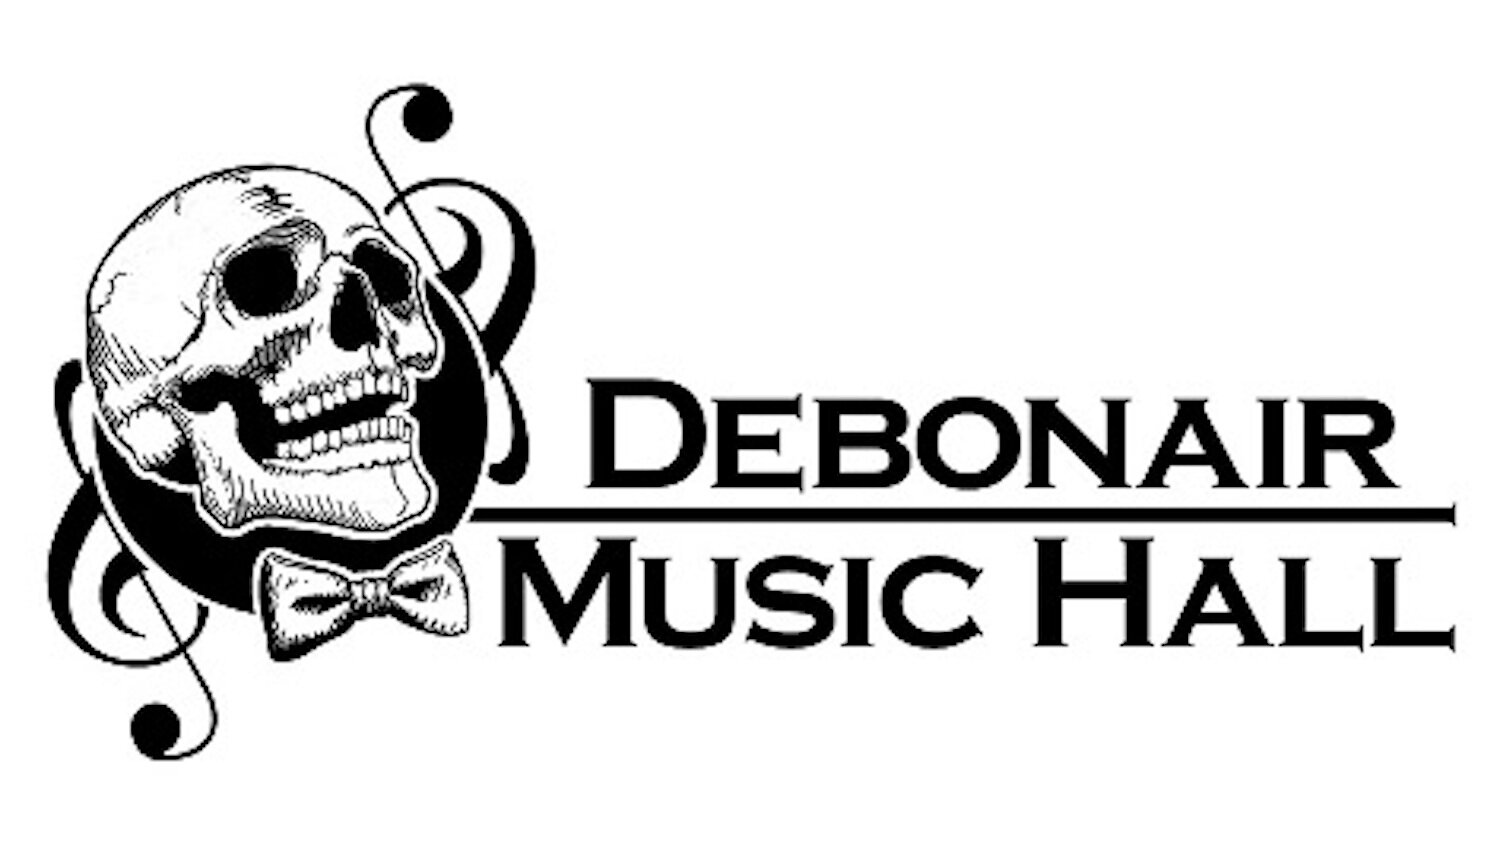 Debonair Music Hall.jpg